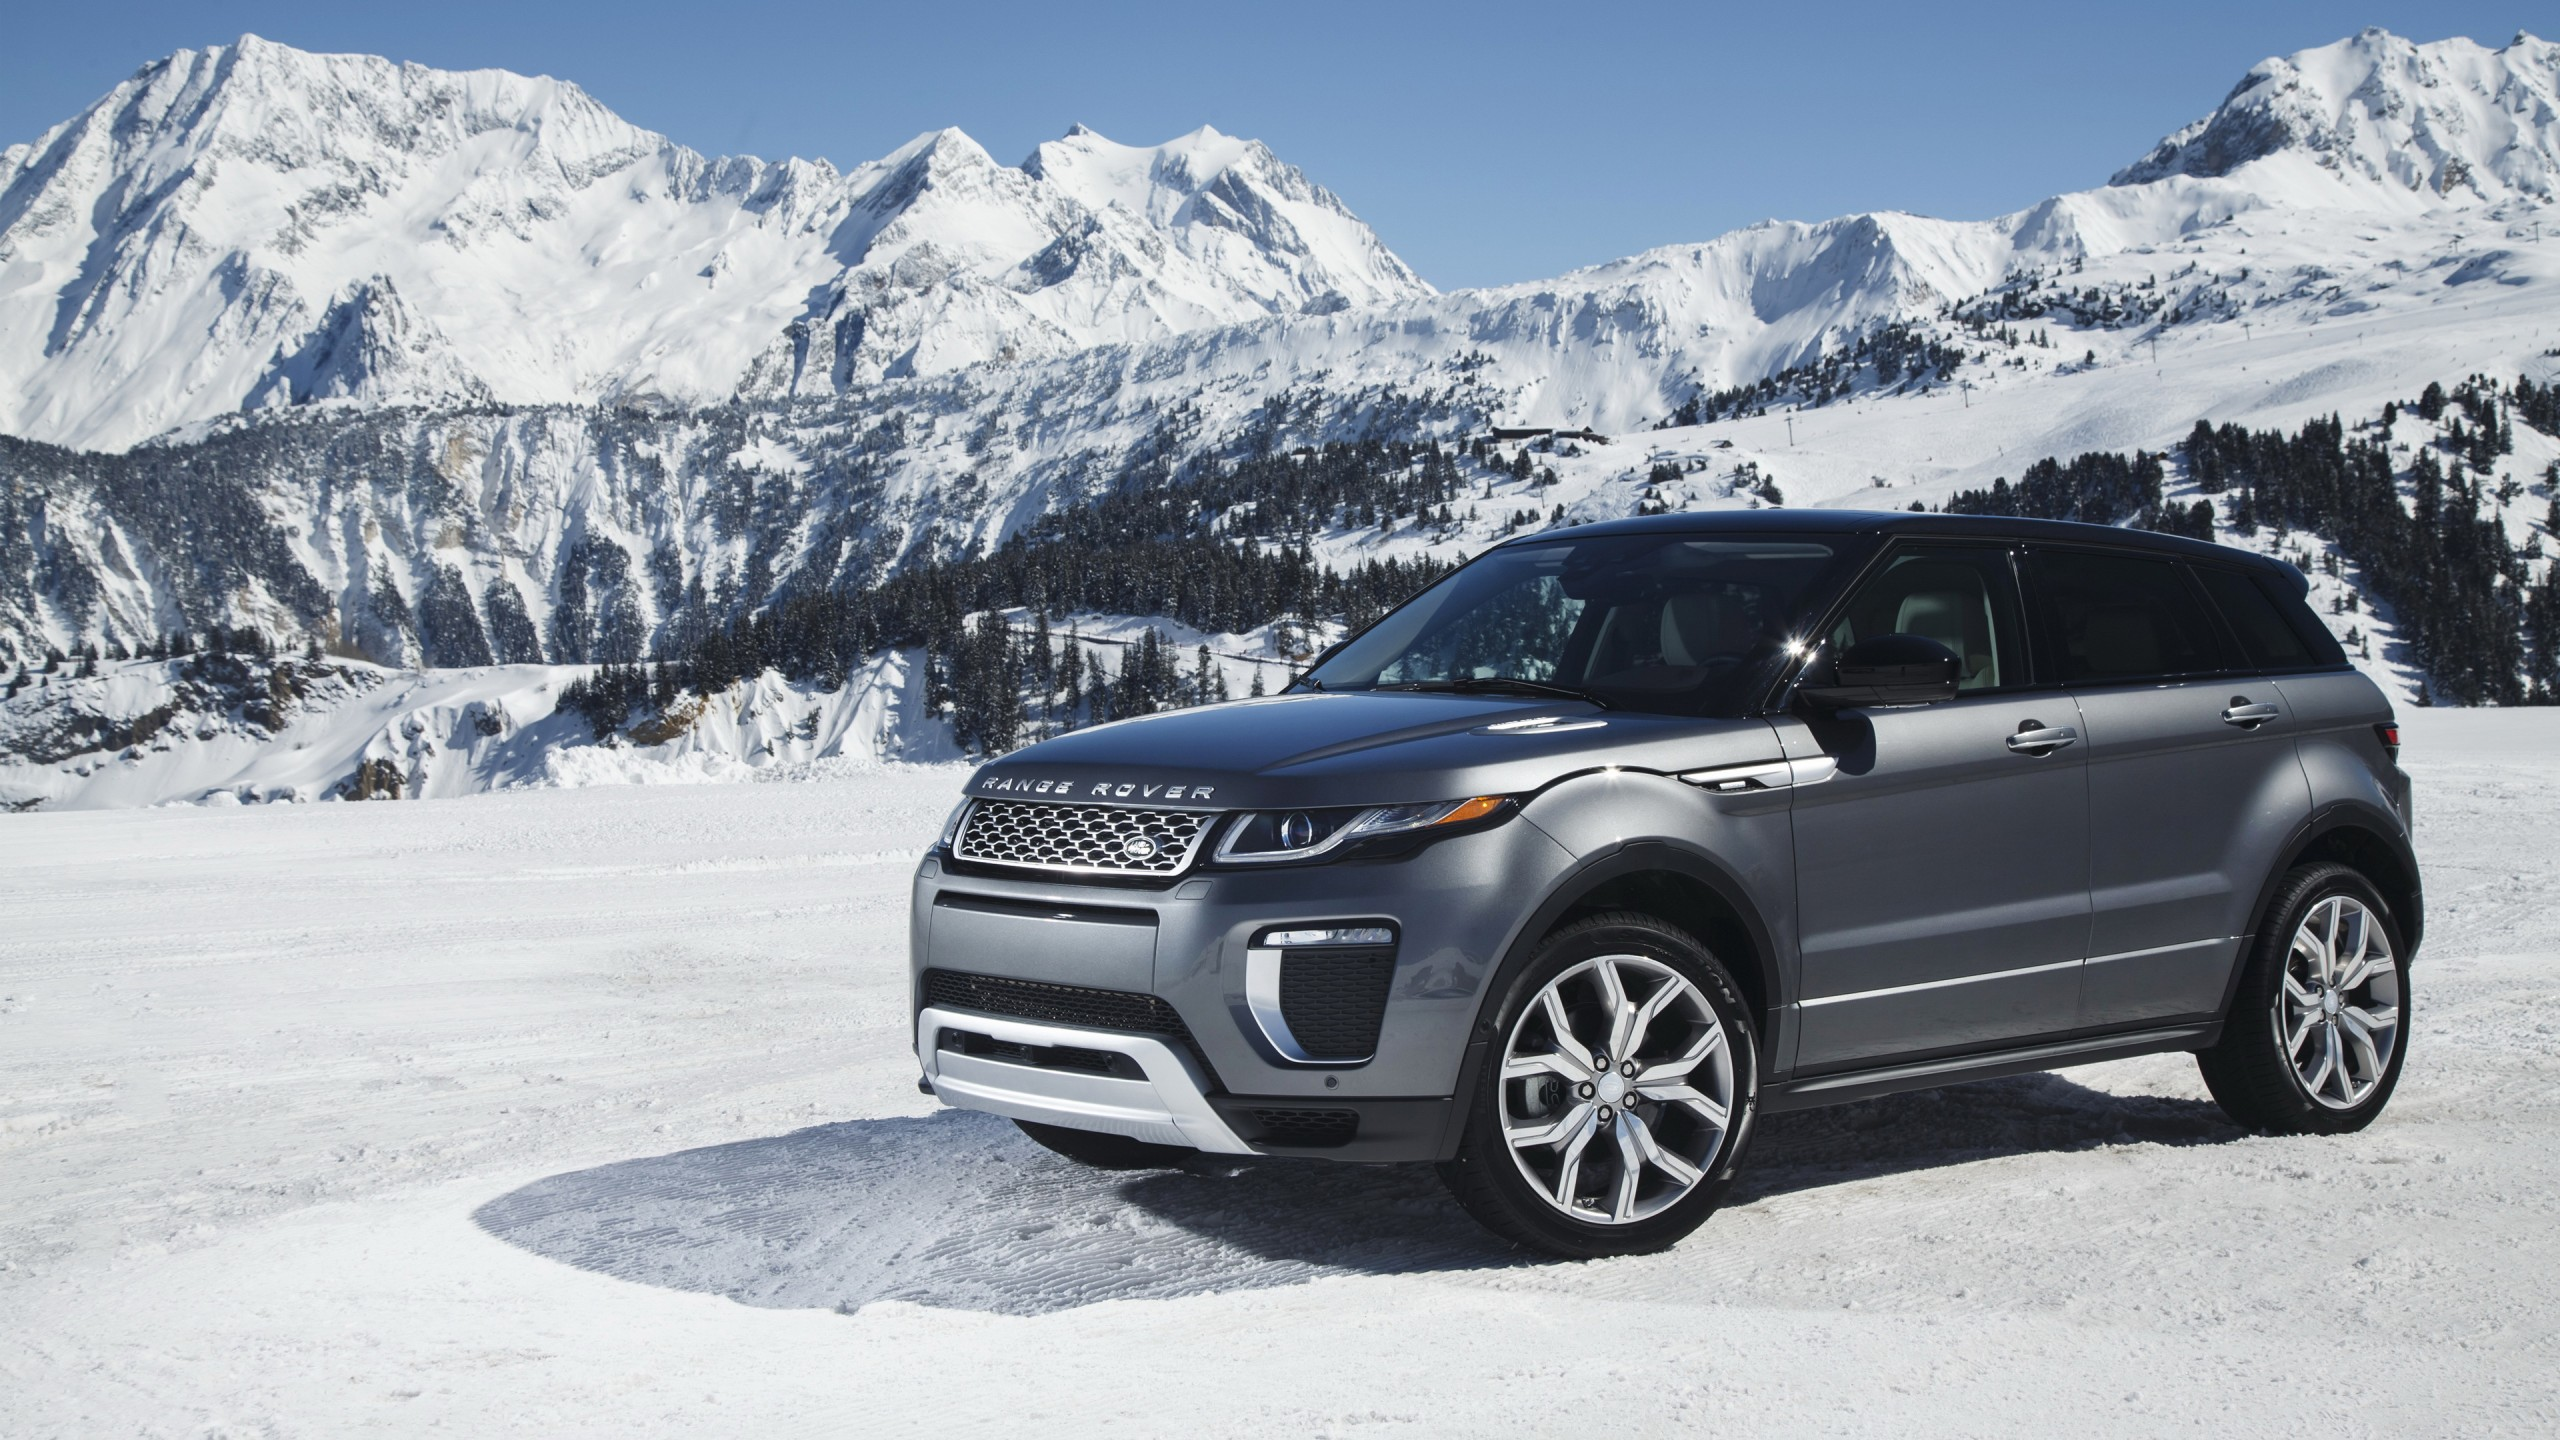 Range Rover Sport Wallpaper For Iphone >> 2016 Range Rover Evoque Autobiography Wallpaper | HD Car Wallpapers | ID #6933